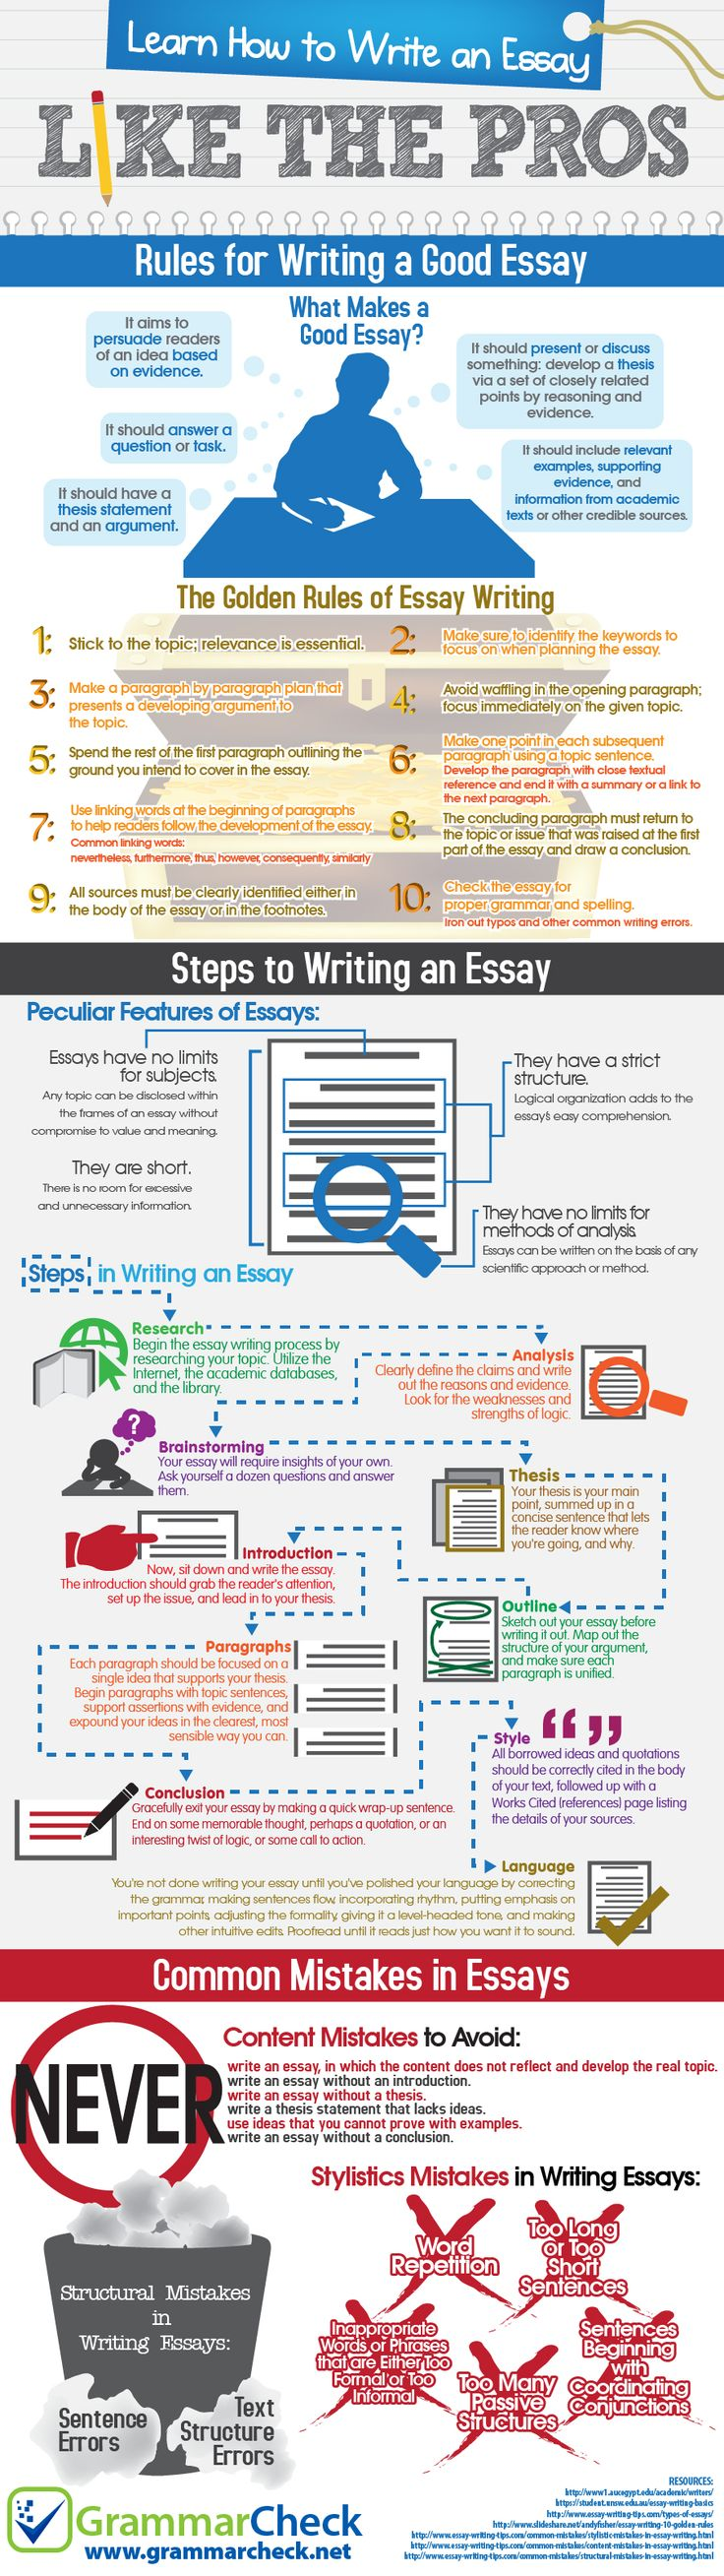 Learn How to Write an Essay Like the Pros (Infographic) | Wave Avenue